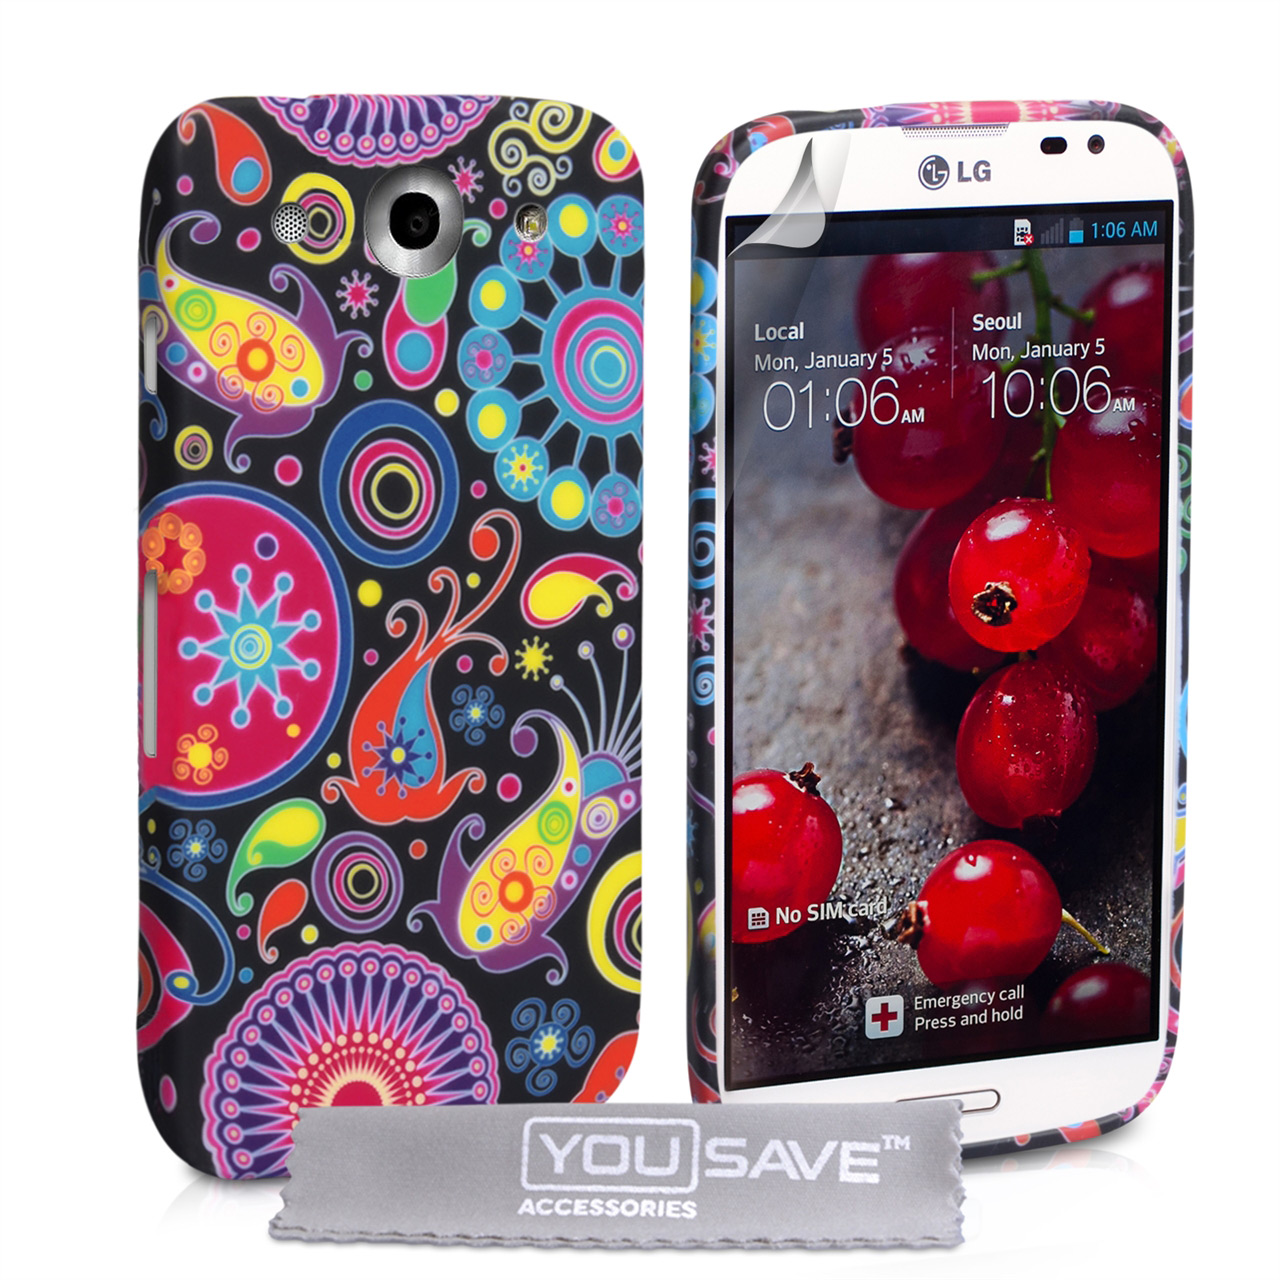 YouSave Accessories LG G Pro Jellyfish Silicone Gel Case